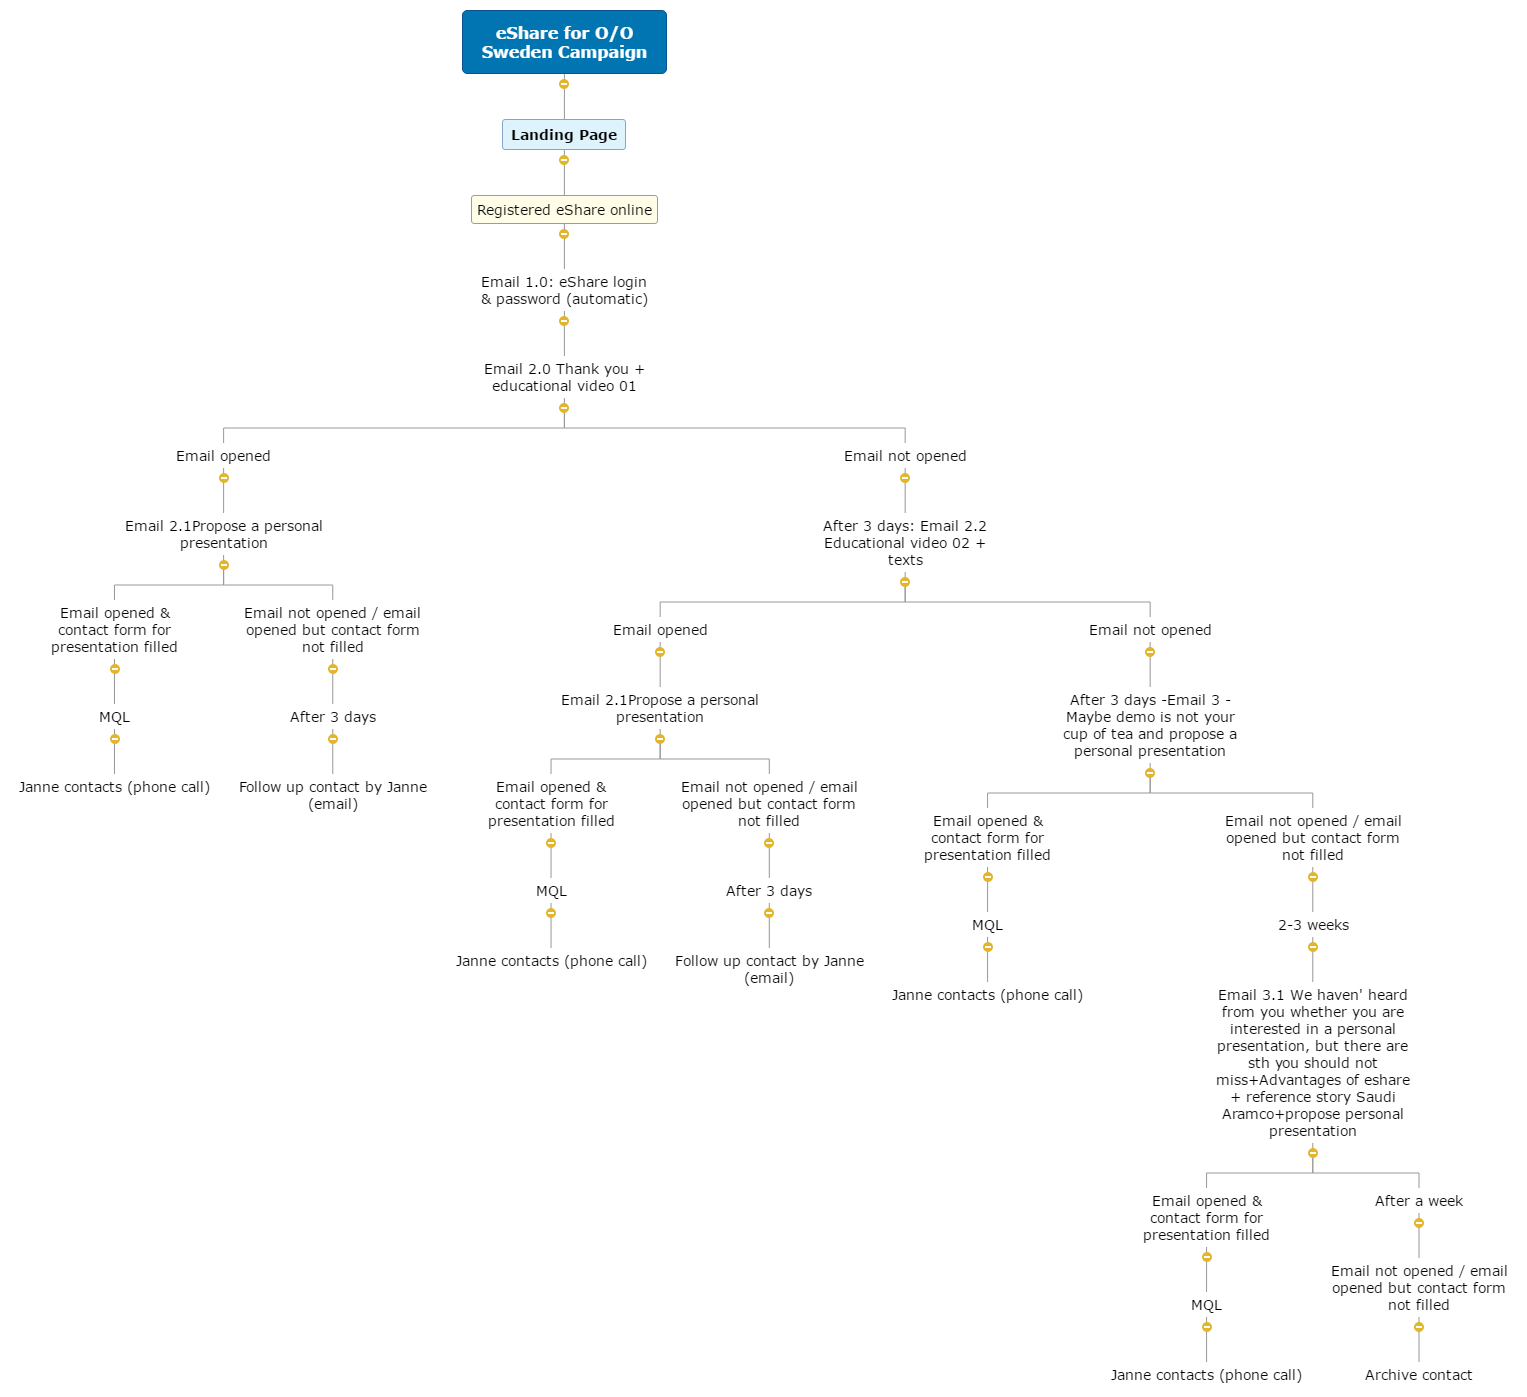 eShare for O_O Sweden Campaign Mind Map